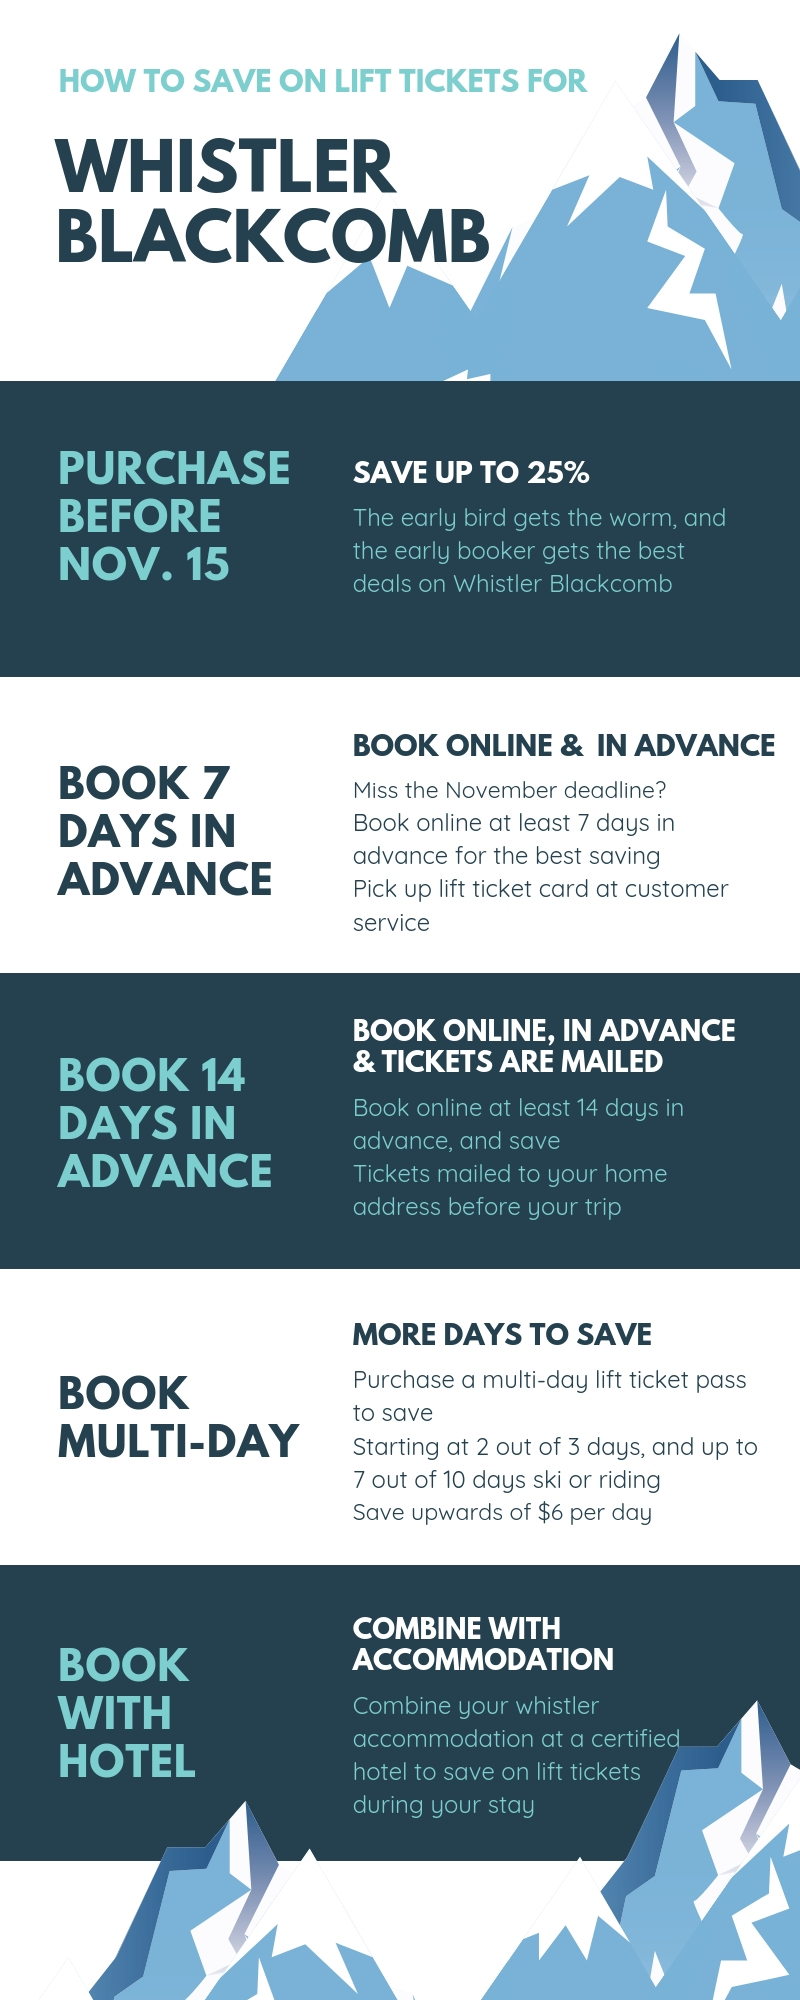 Info graphic on Whistler Blackcomb lift tickets